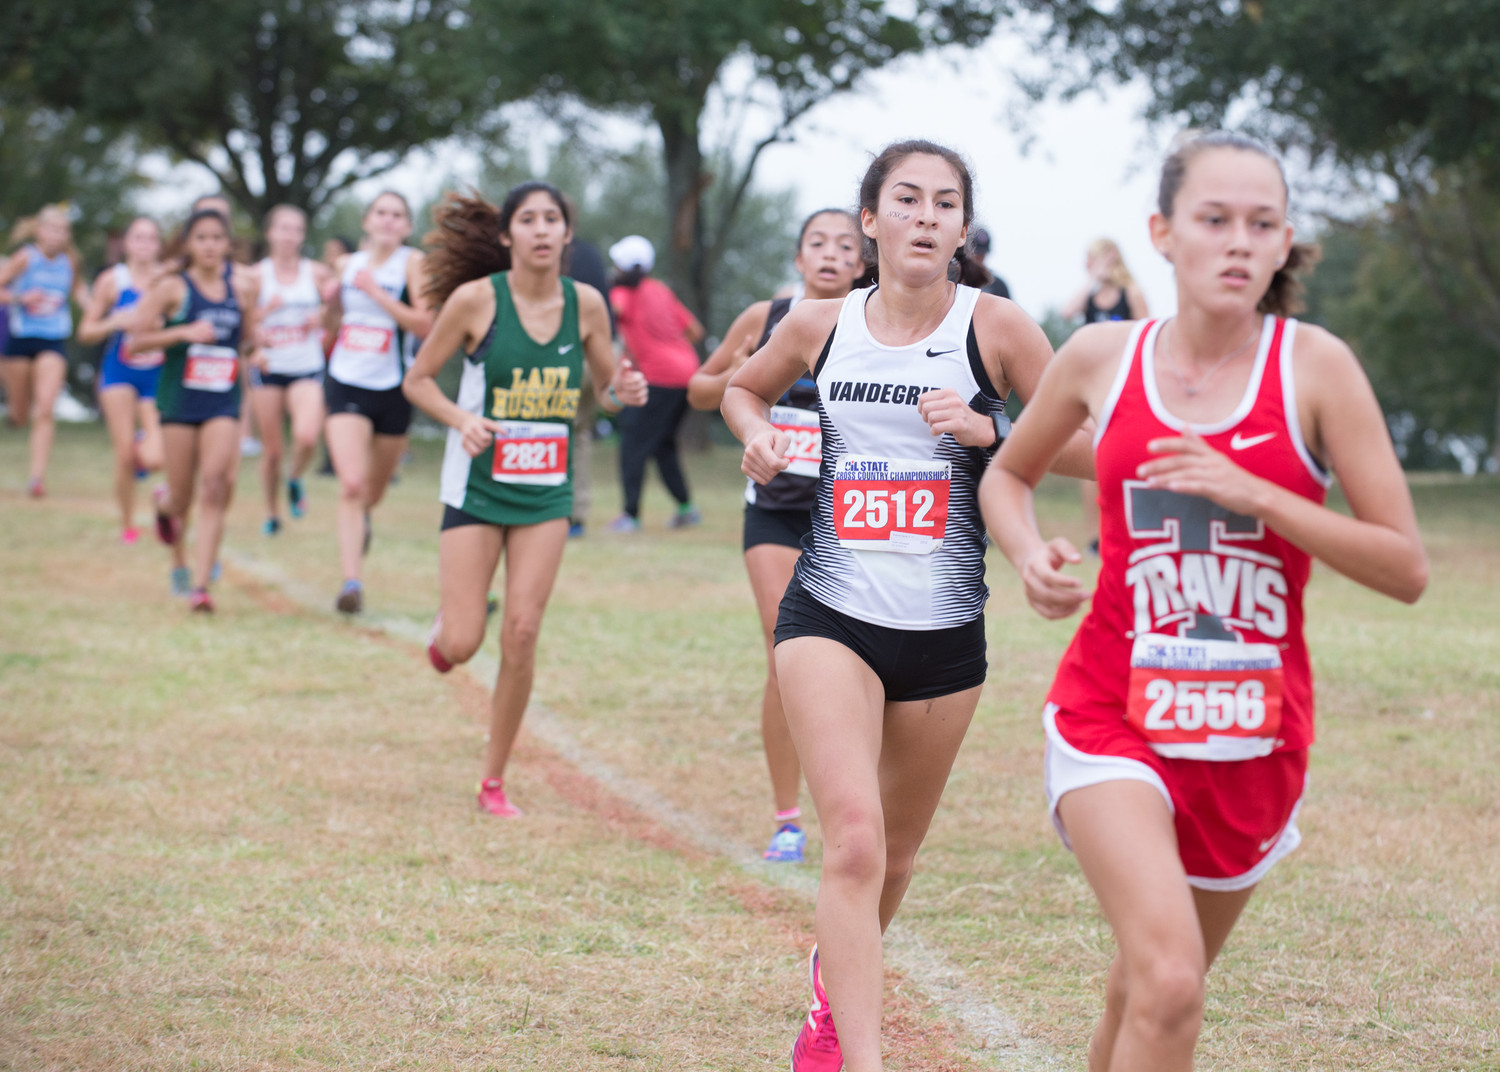 Brianna Garza of Vandegrift High School runs in the UIL Cross Country State Meet at Old Settlers Park in Round Rock, Texas, on Saturday, Nov. 4, 2017. Garza finished the Class 6A girls race with an overall time of 19:37.24.